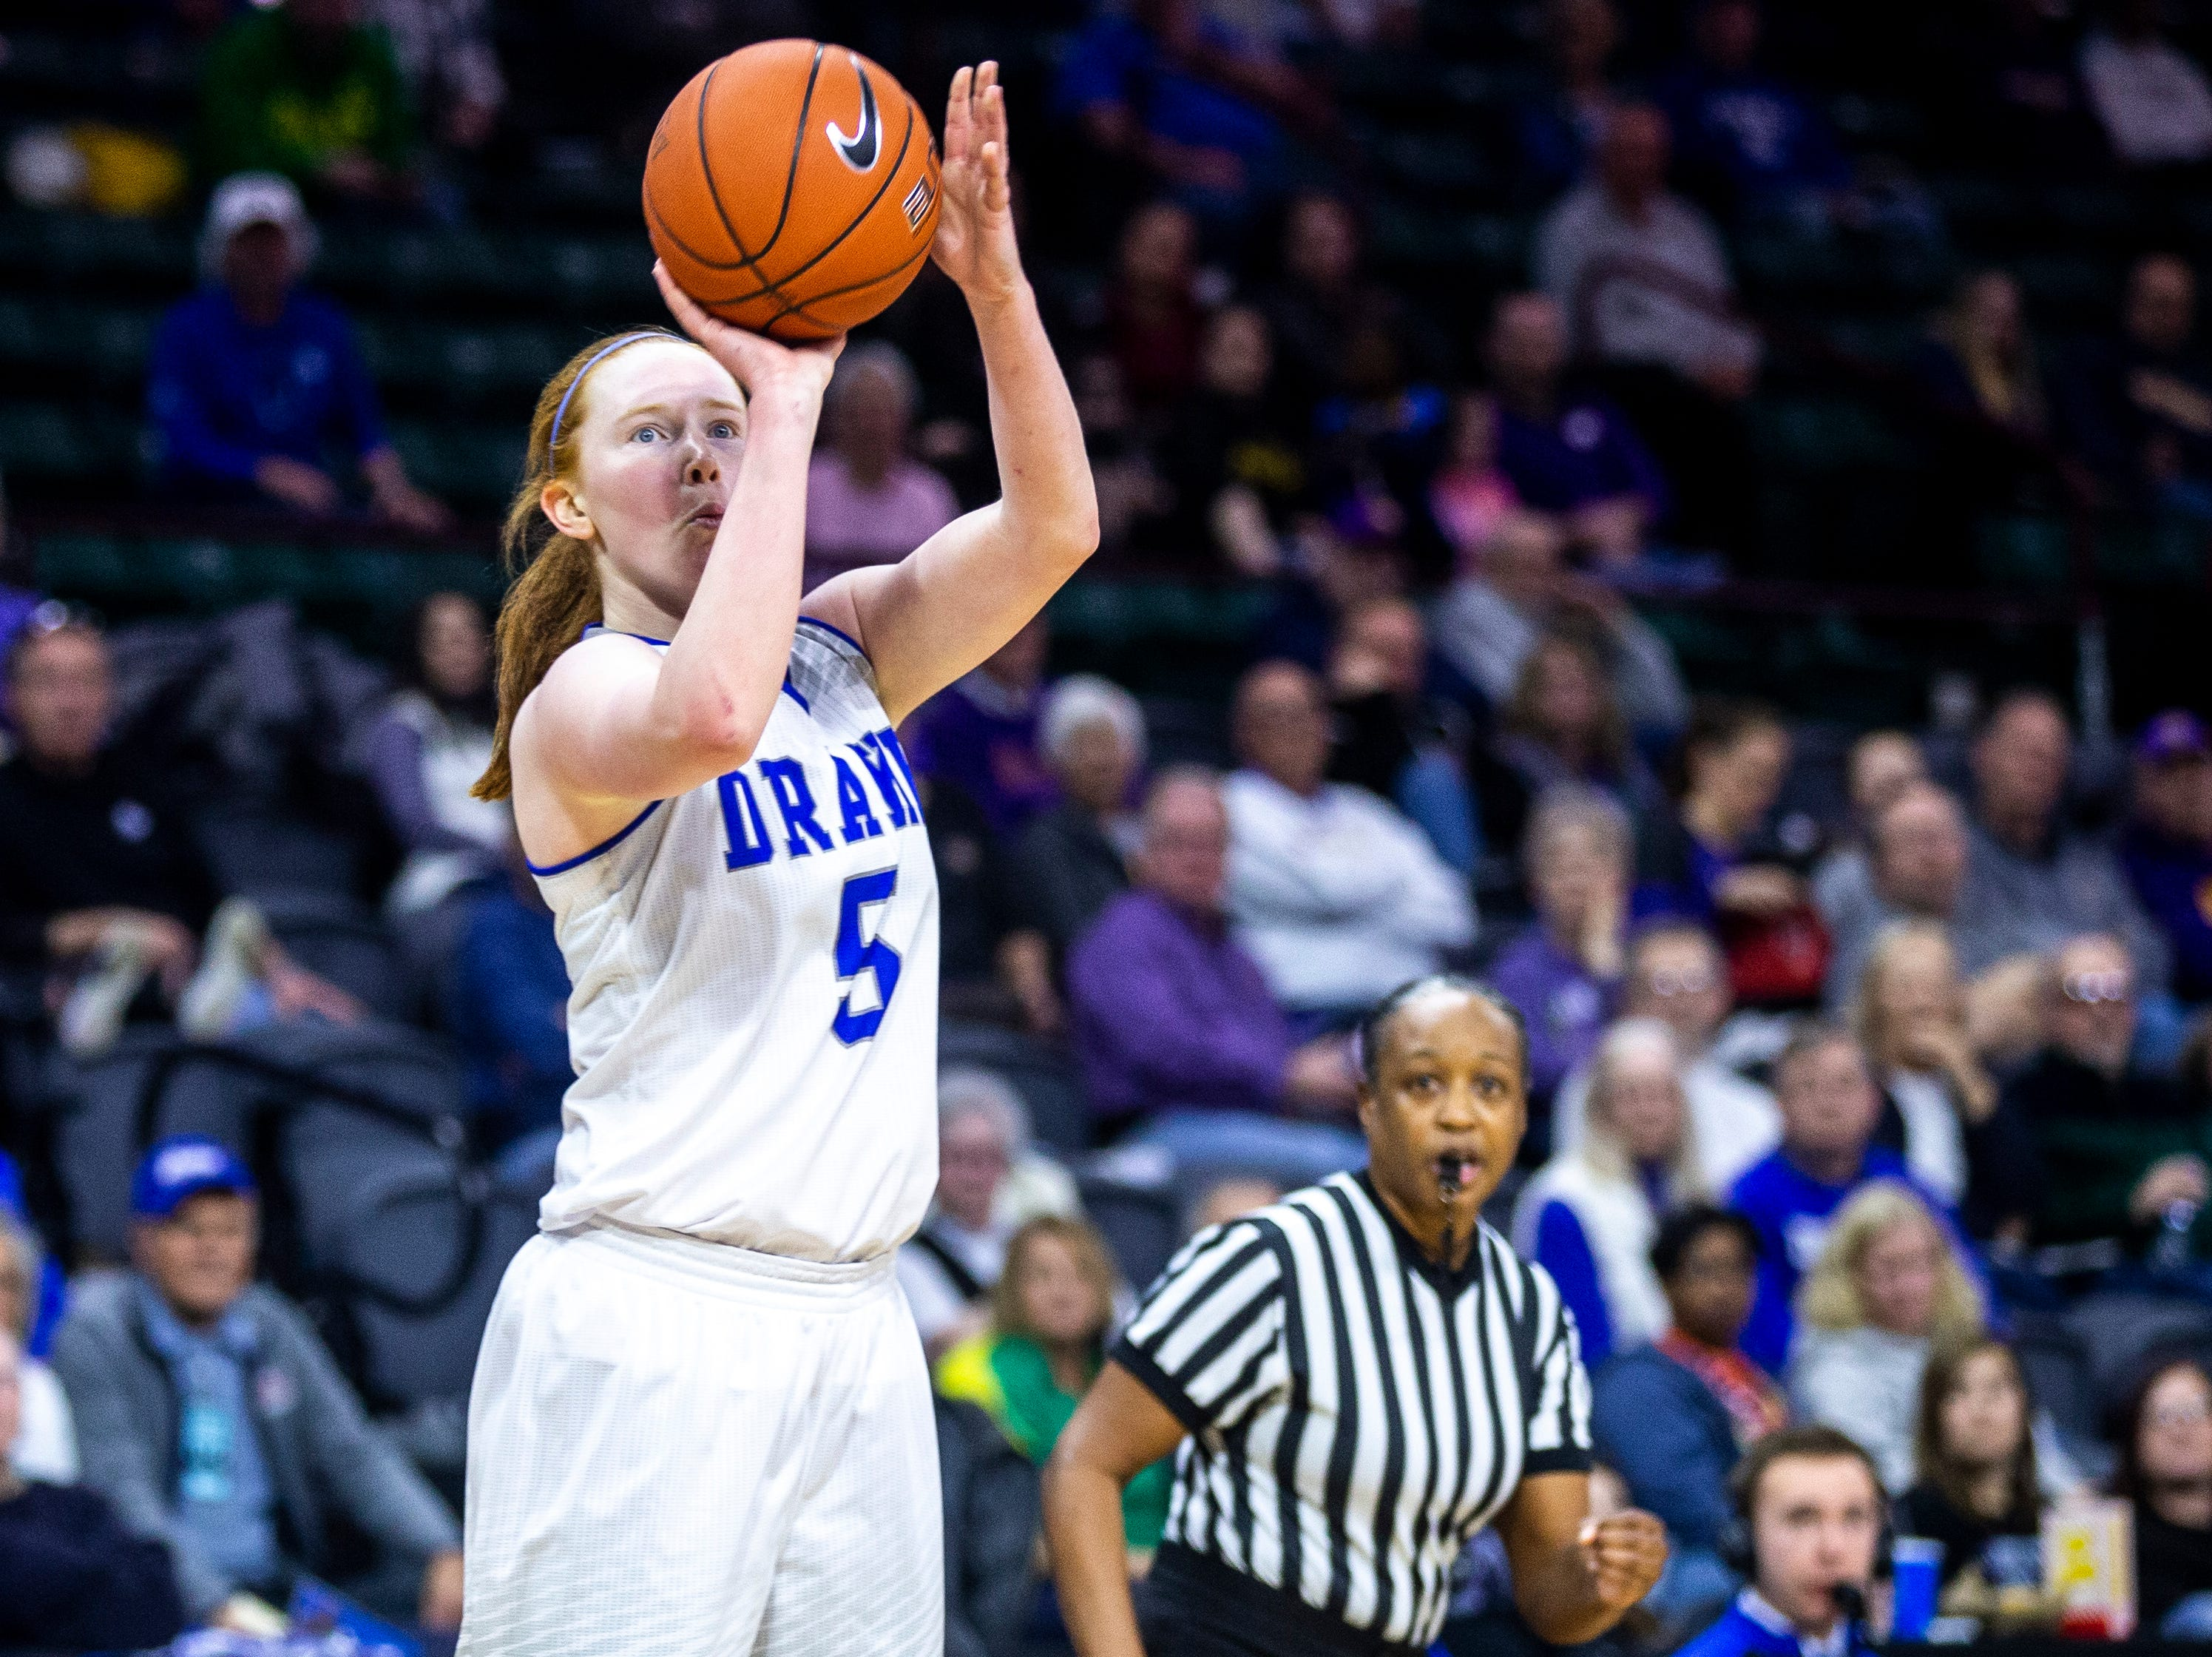 Drake guard Becca Hittner (5) makes a 3-point basket during a NCAA Missouri Valley Conference women's basketball semi final tournament game on Saturday, March 16, 2019, the TaxSlayer Center in Moline, Illinois.